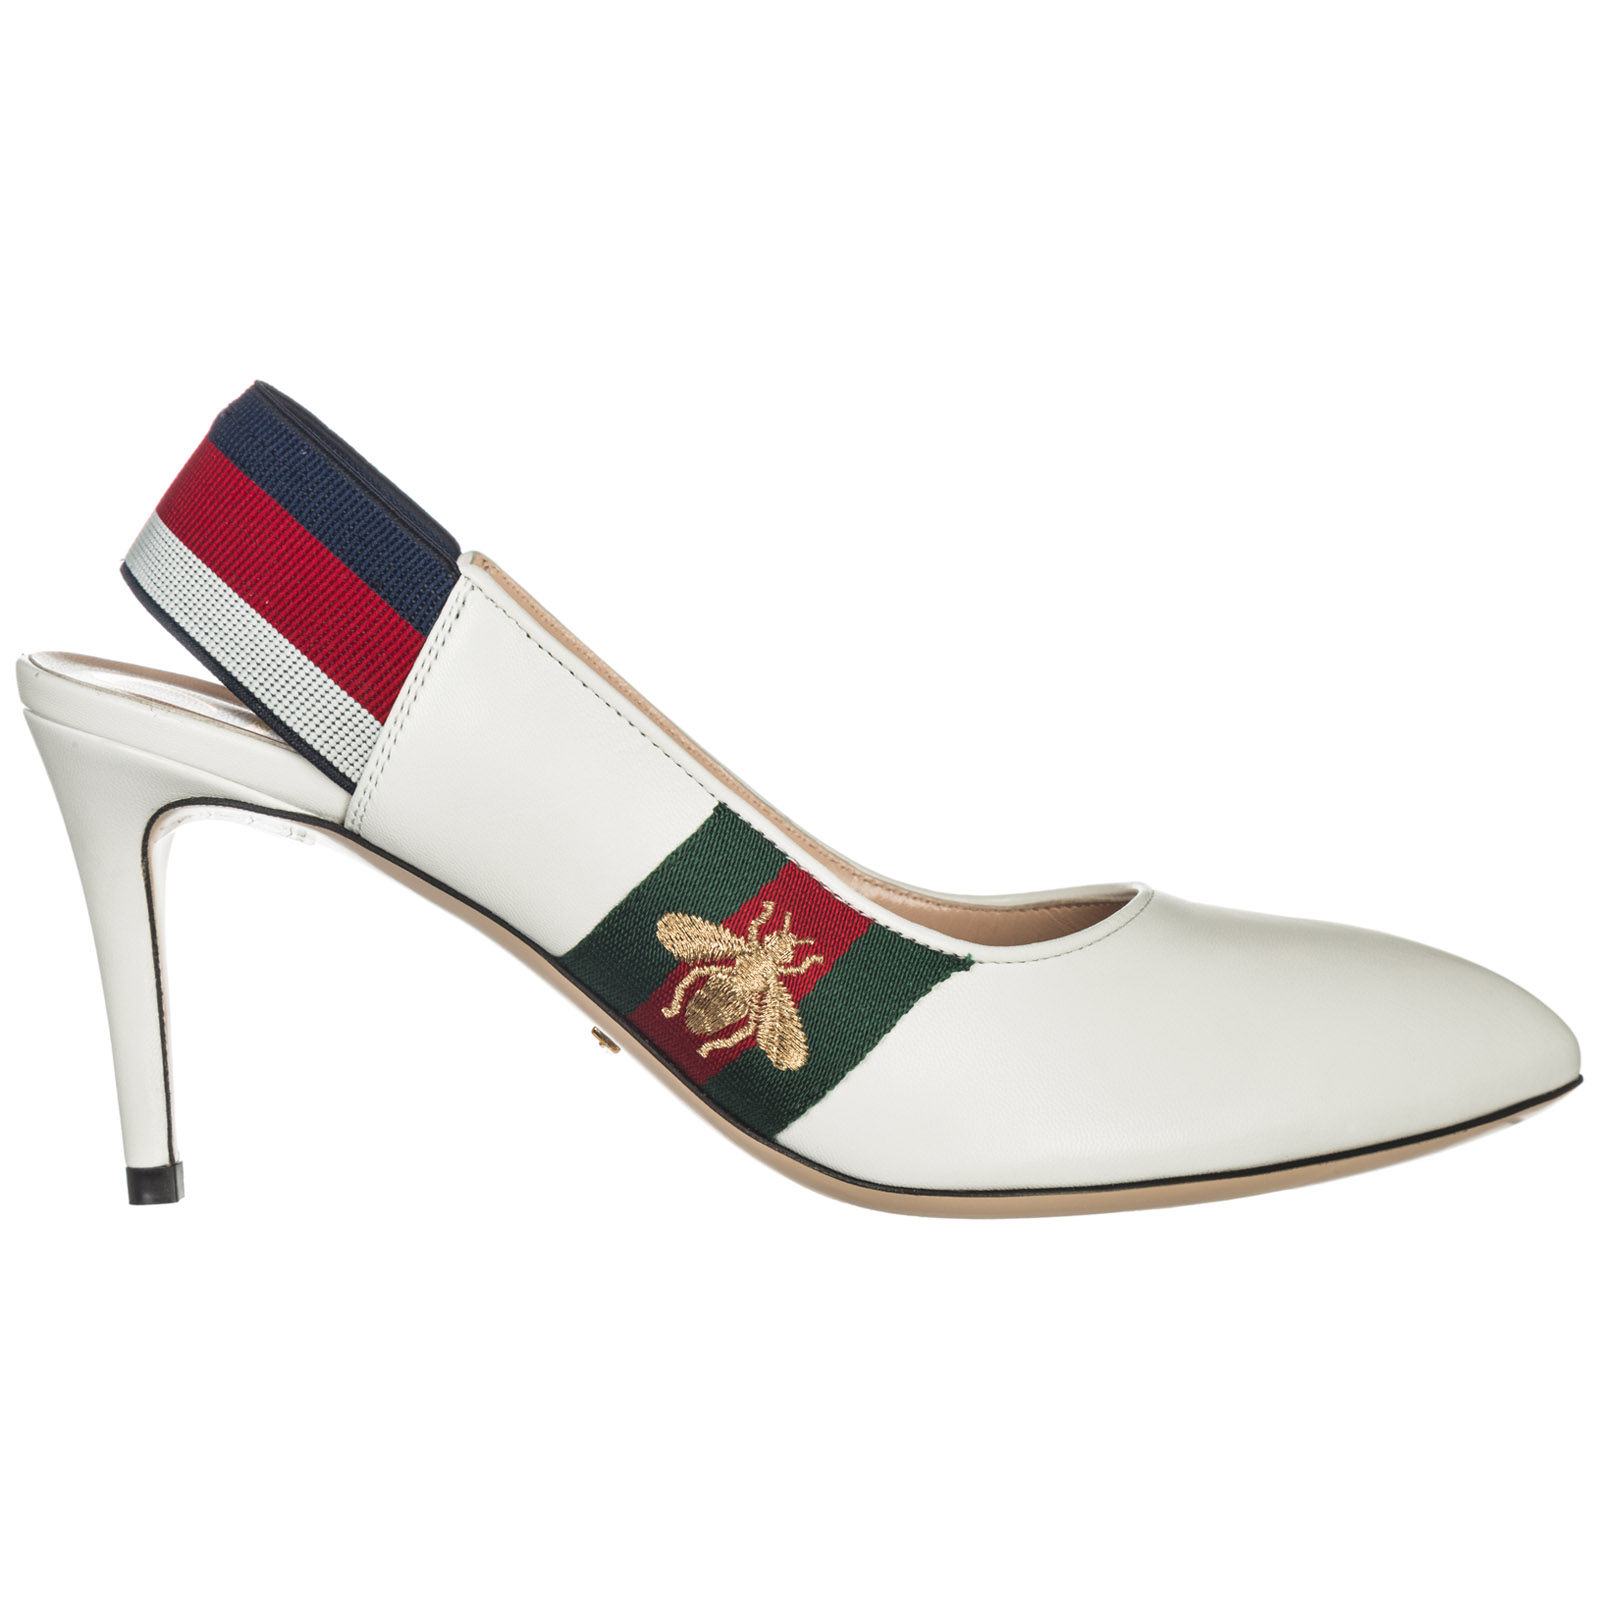 Gucci Women's Leather Pumps Court Shoes High Heel In White